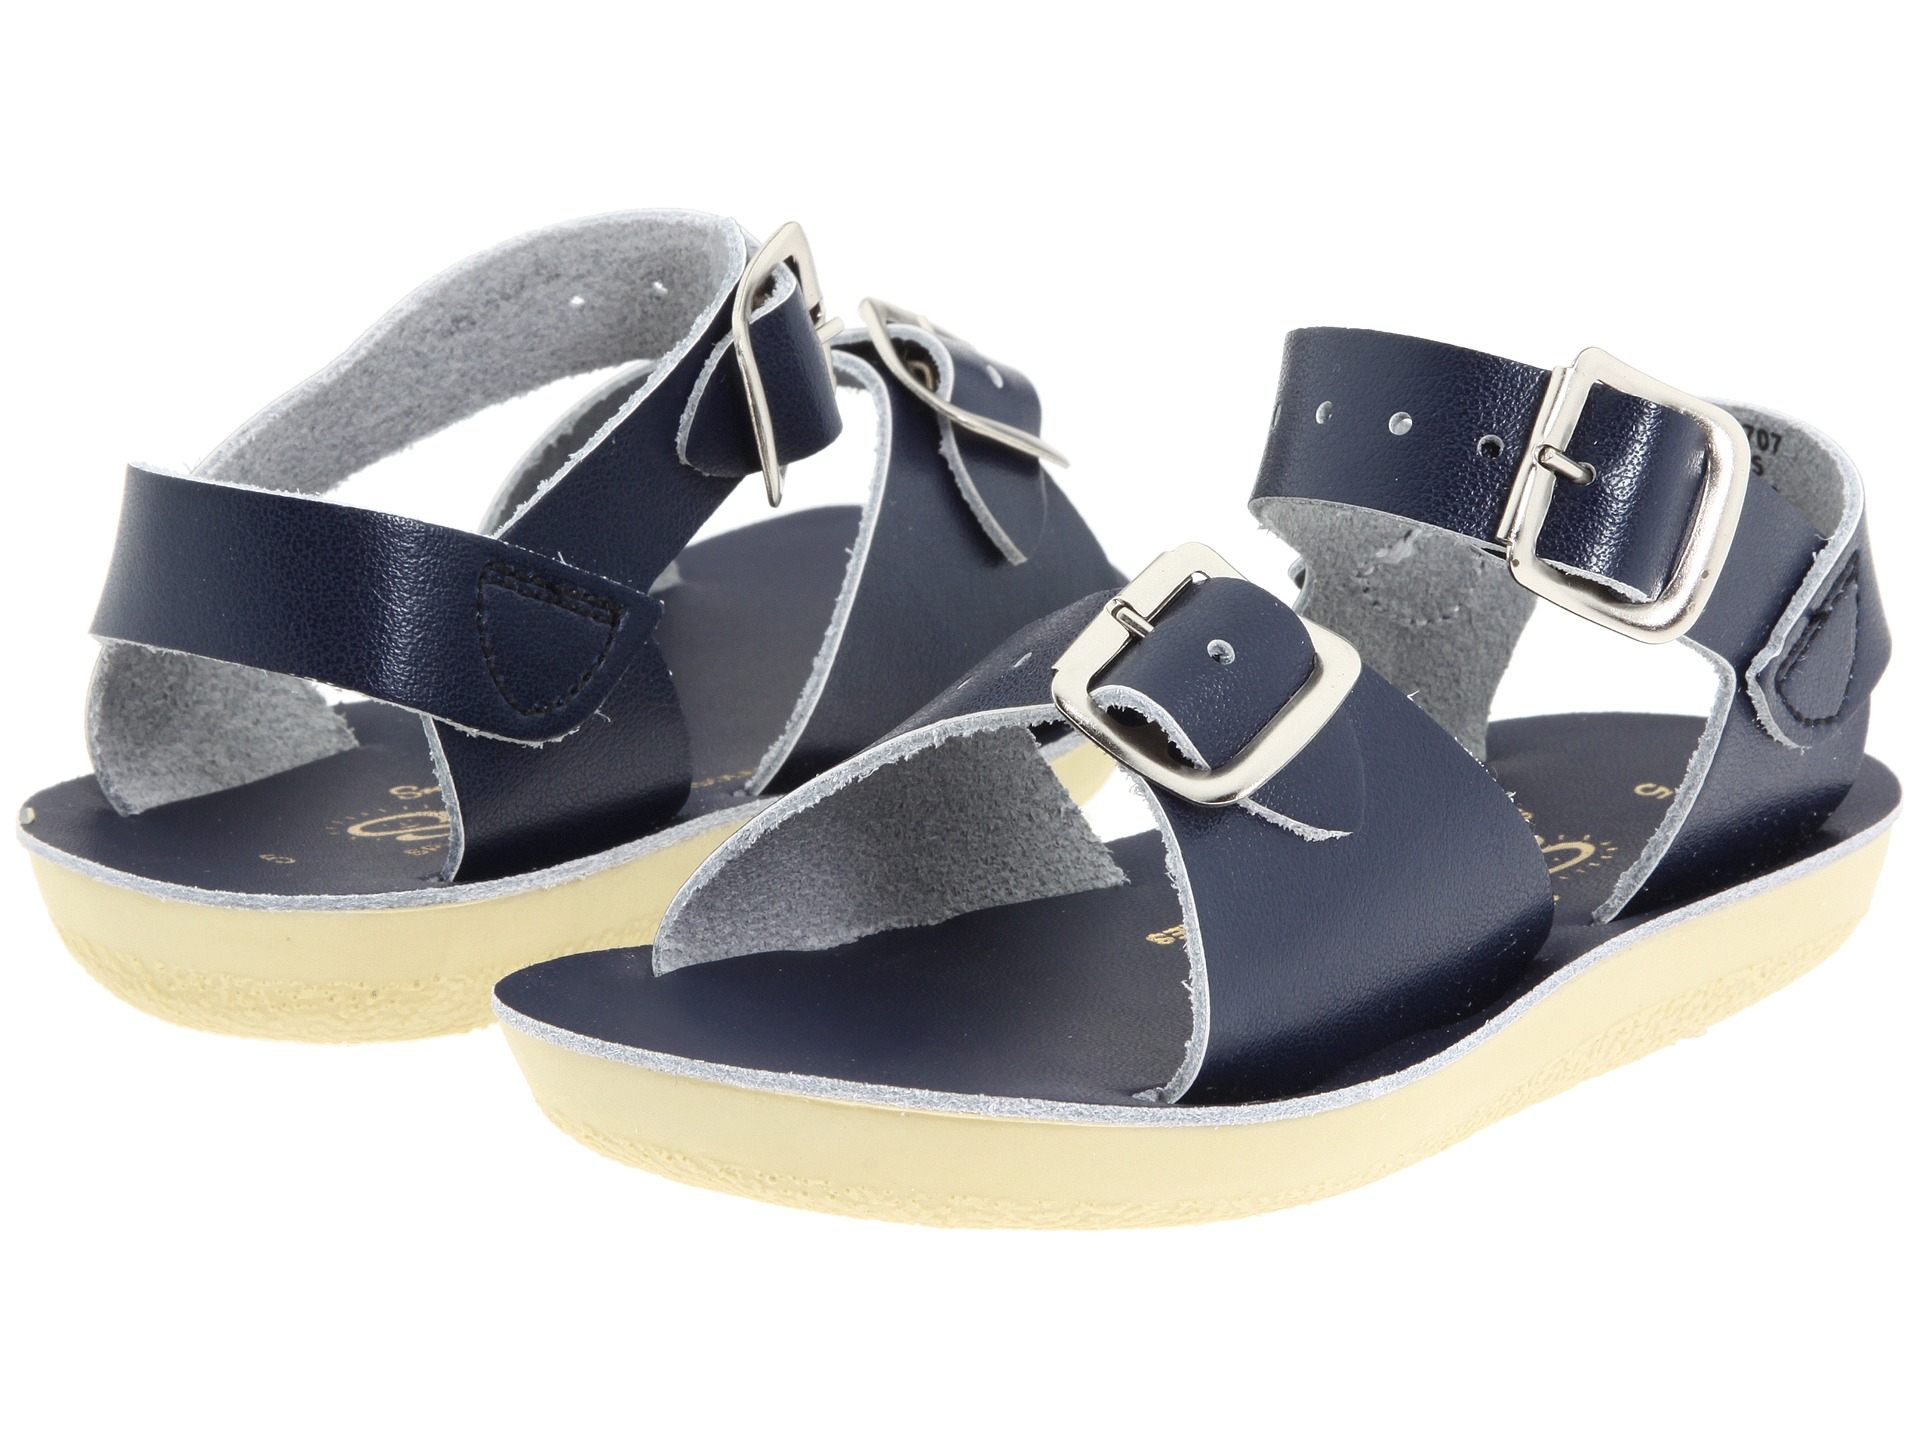 Salt water sandal by hoy shoes sun san surfer toddler little kid zappos com free shipping both ways